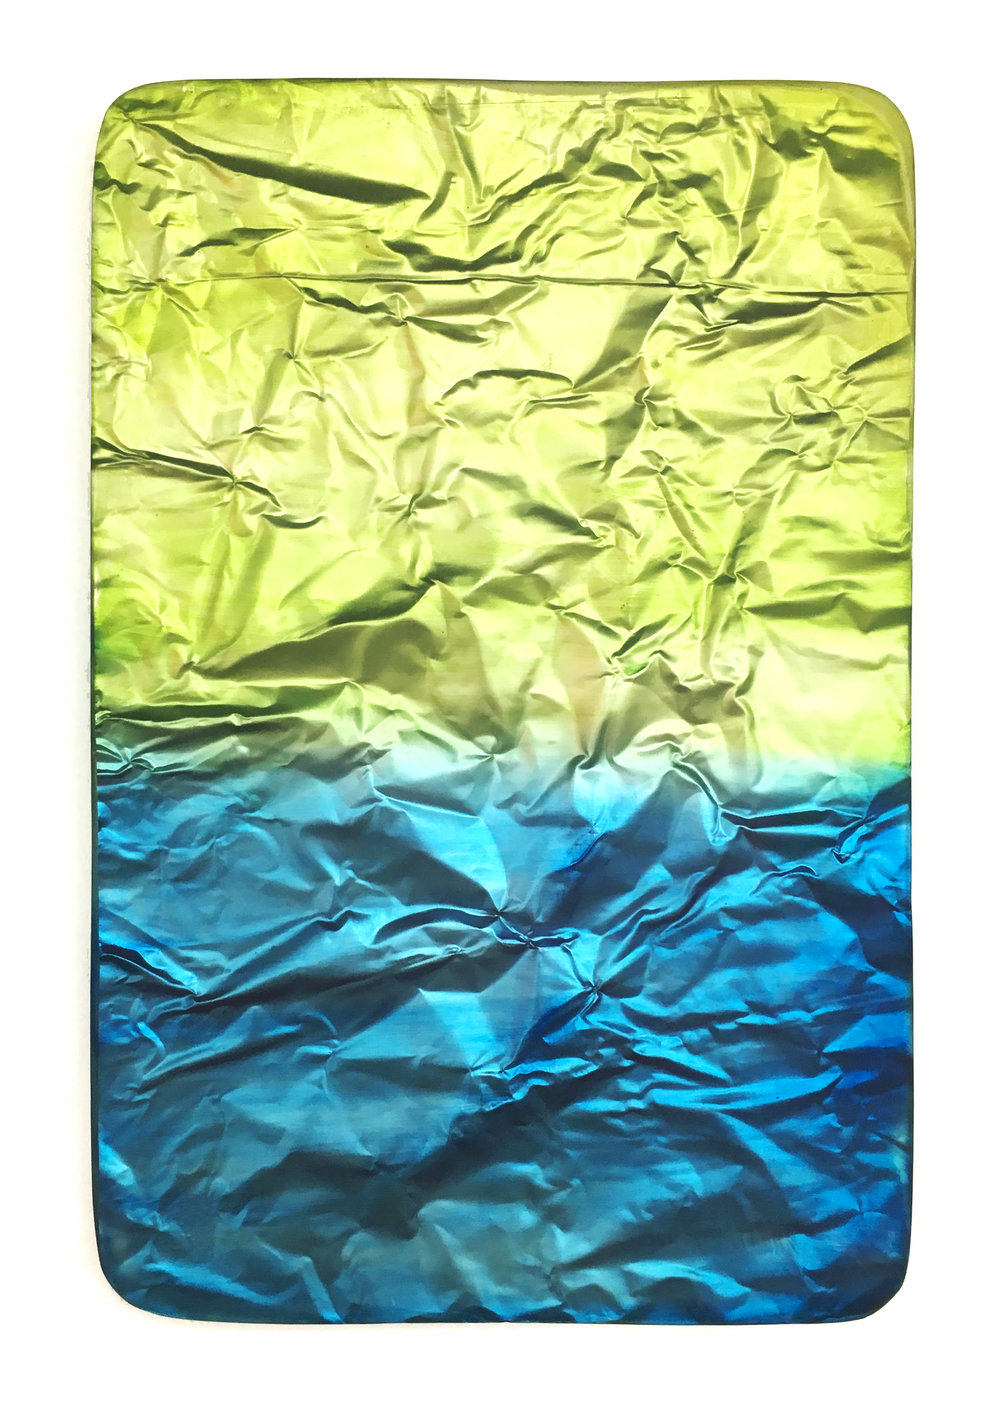 "SLU FINER   mdf panel, oil paint, UV  protected epoxy, vanish, roofing aluminum  20"" x 30"" 2012"